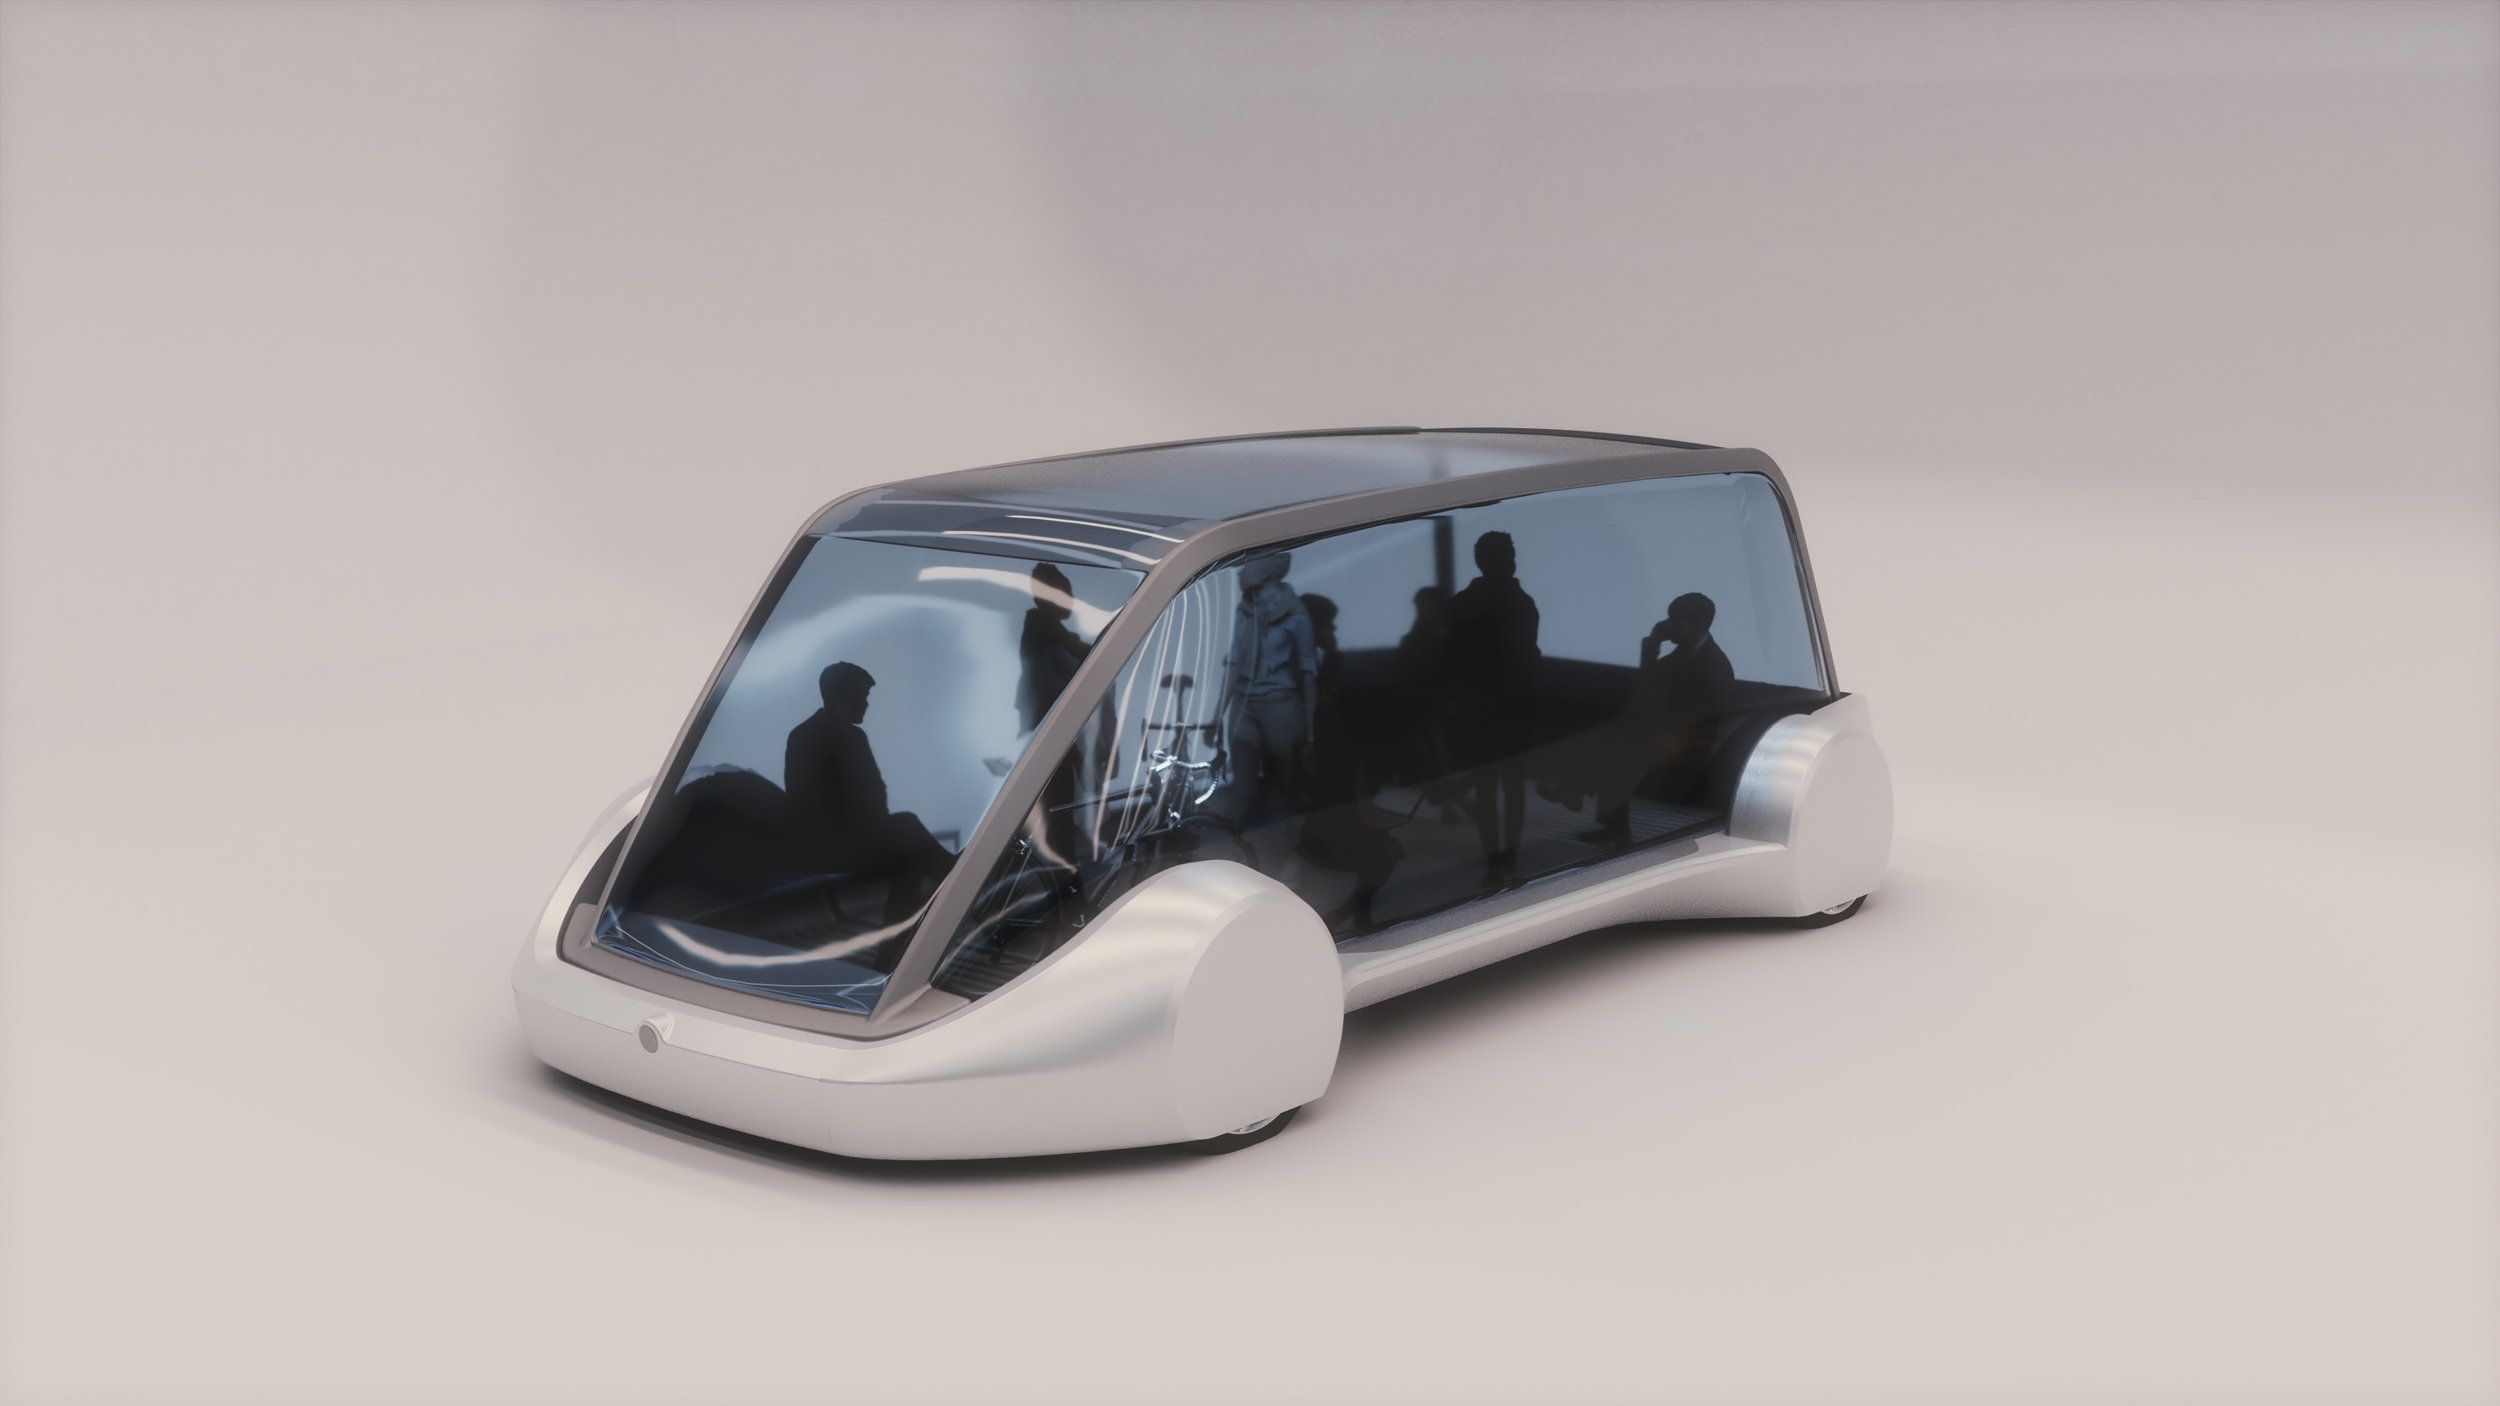 Elon Musk's 150mph Subway Of The Future Just Got A Step Closer To